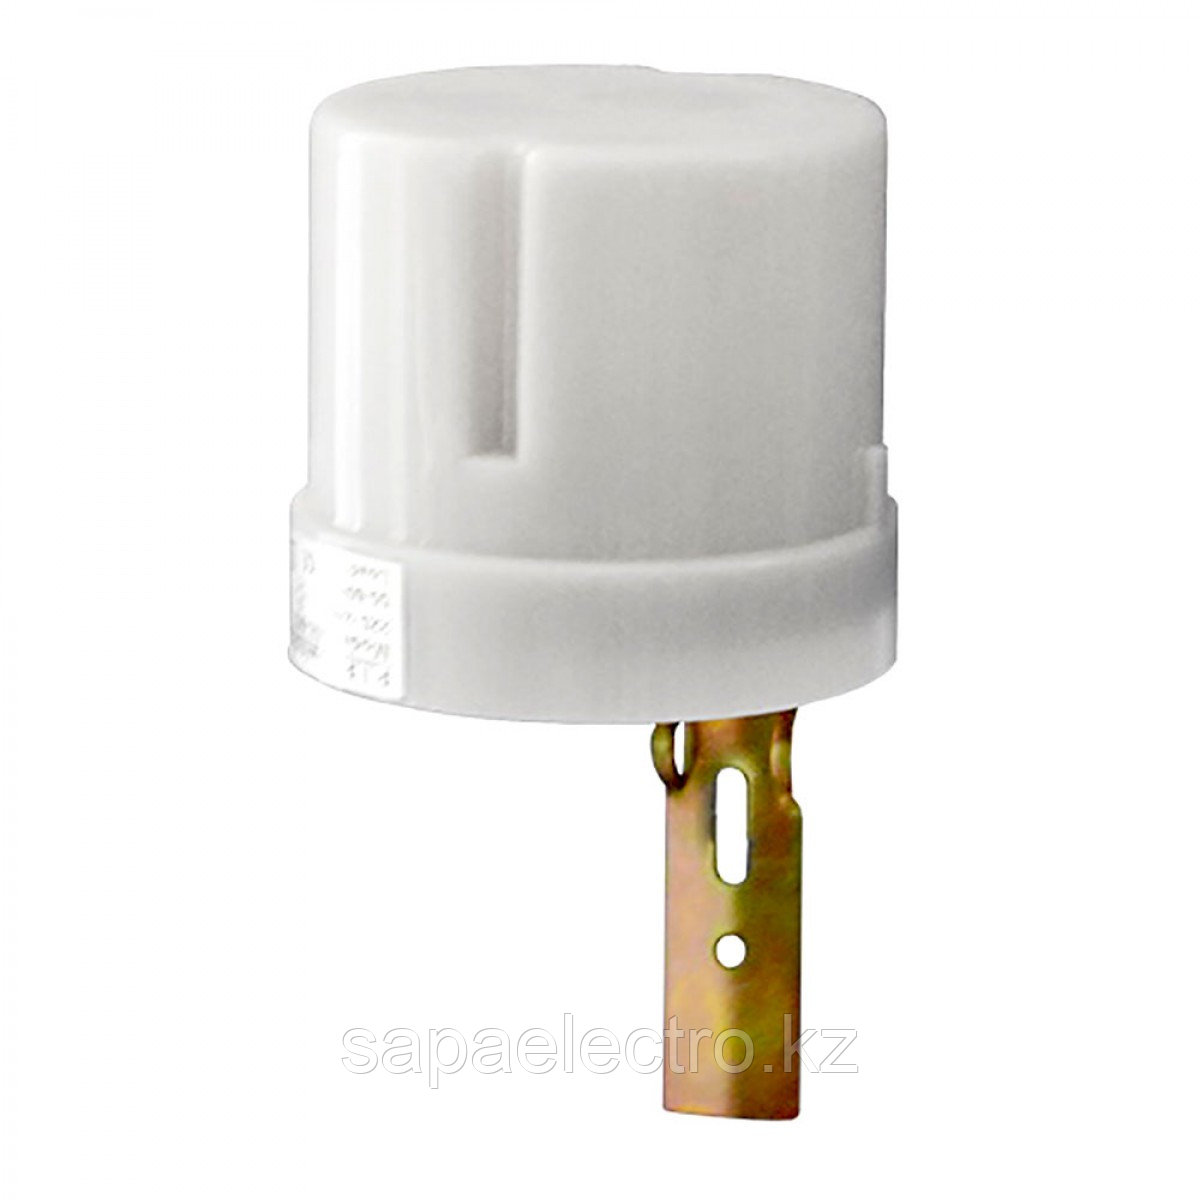 PHOTOCELL SWITCH MH-602,10A    (100шт)   (MASTE)